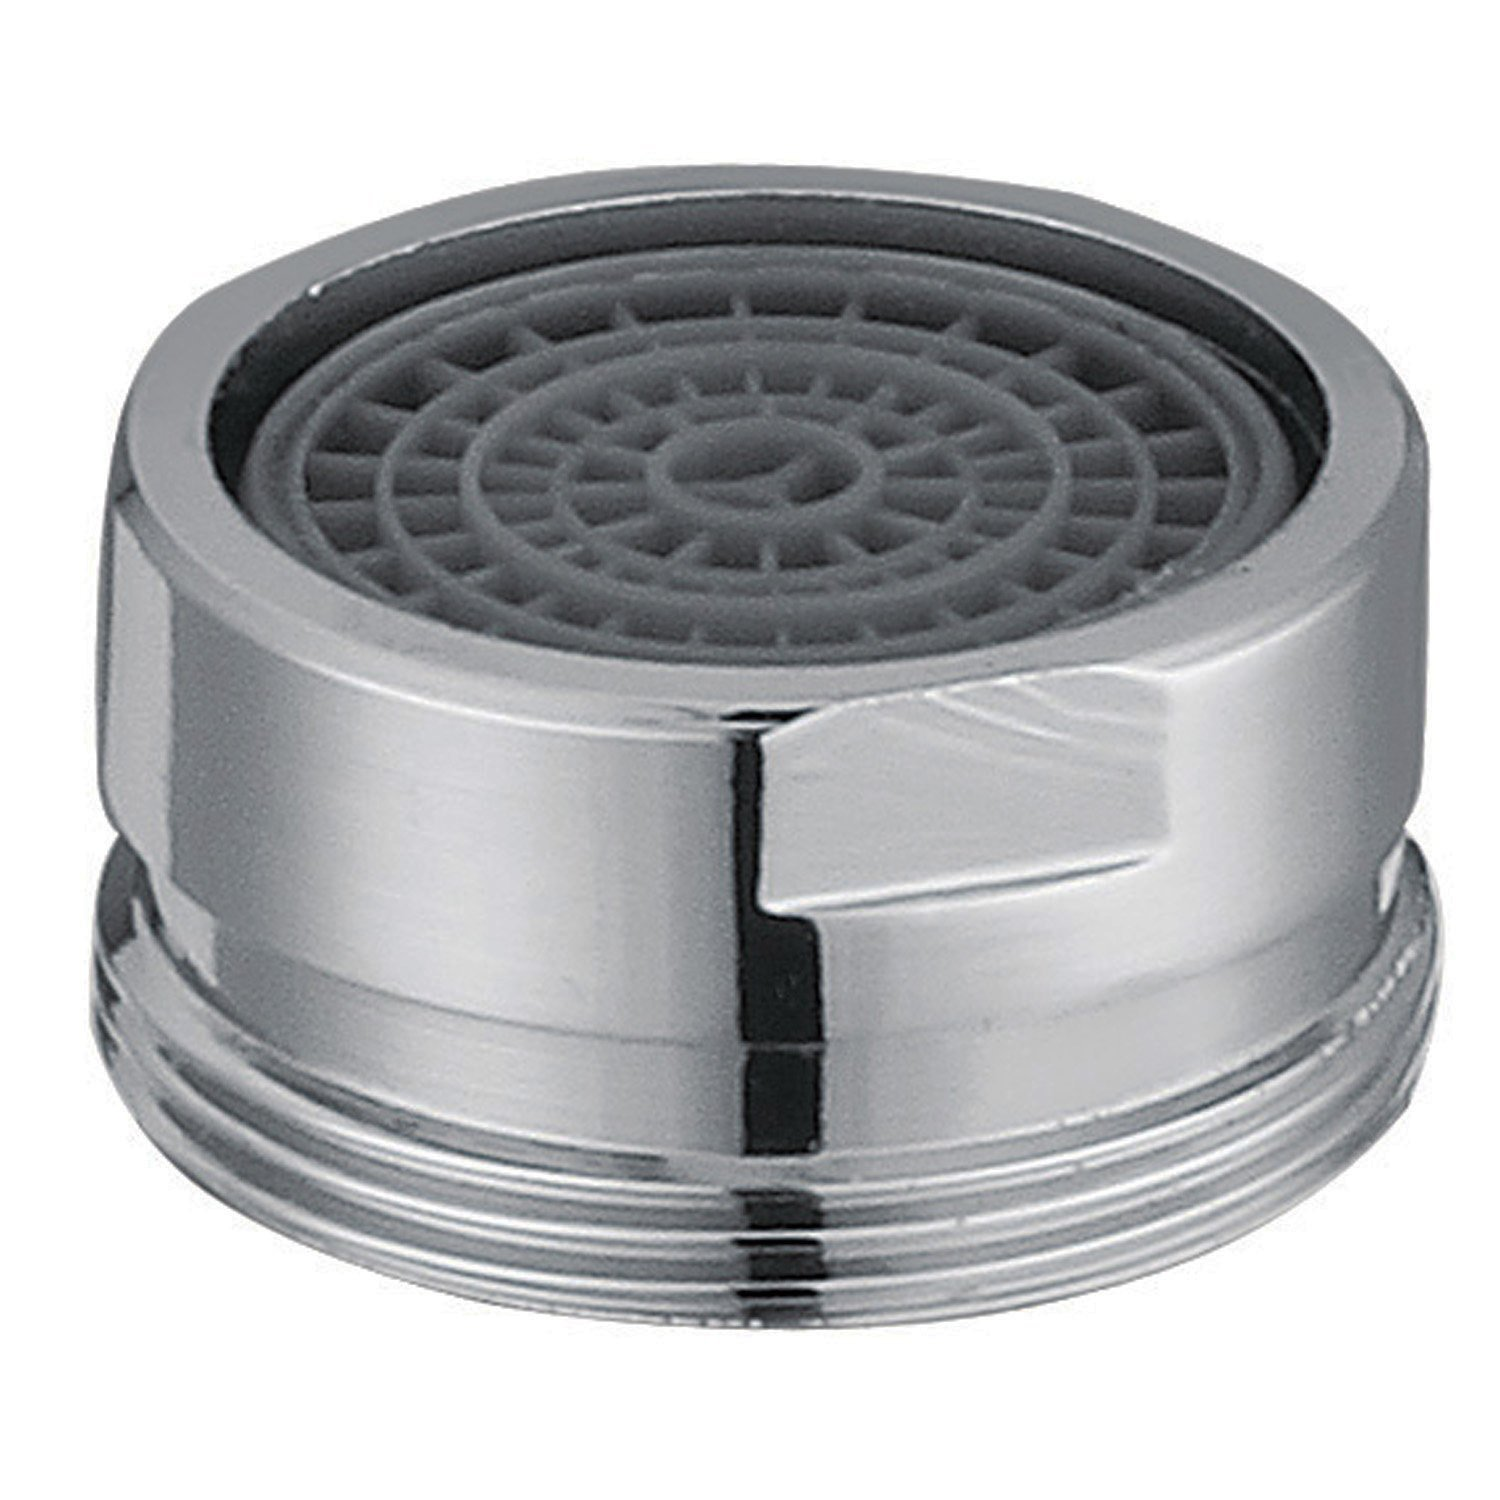 Get Quotations Low Flow Faucet Aerator 24 Mm Male Thread Bubbler Sink Laminar Bubble Water